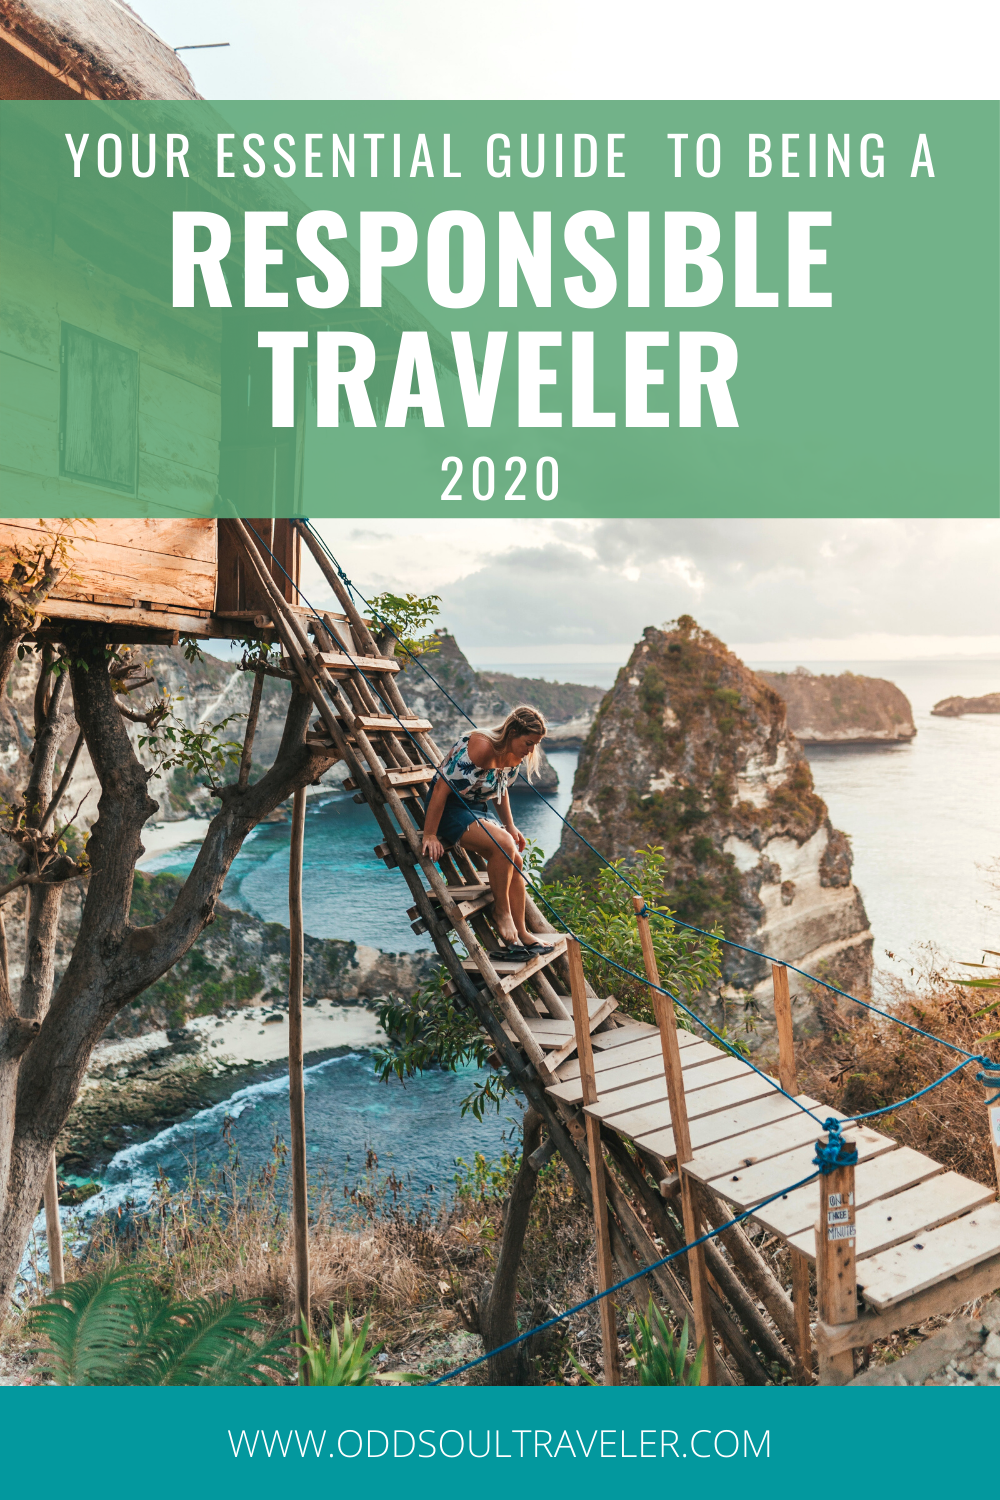 The ultimate list of eco-friendly transportation and accommodation options, sustainable travel gear, and eco-friendly companies in the outdoor and travel industry